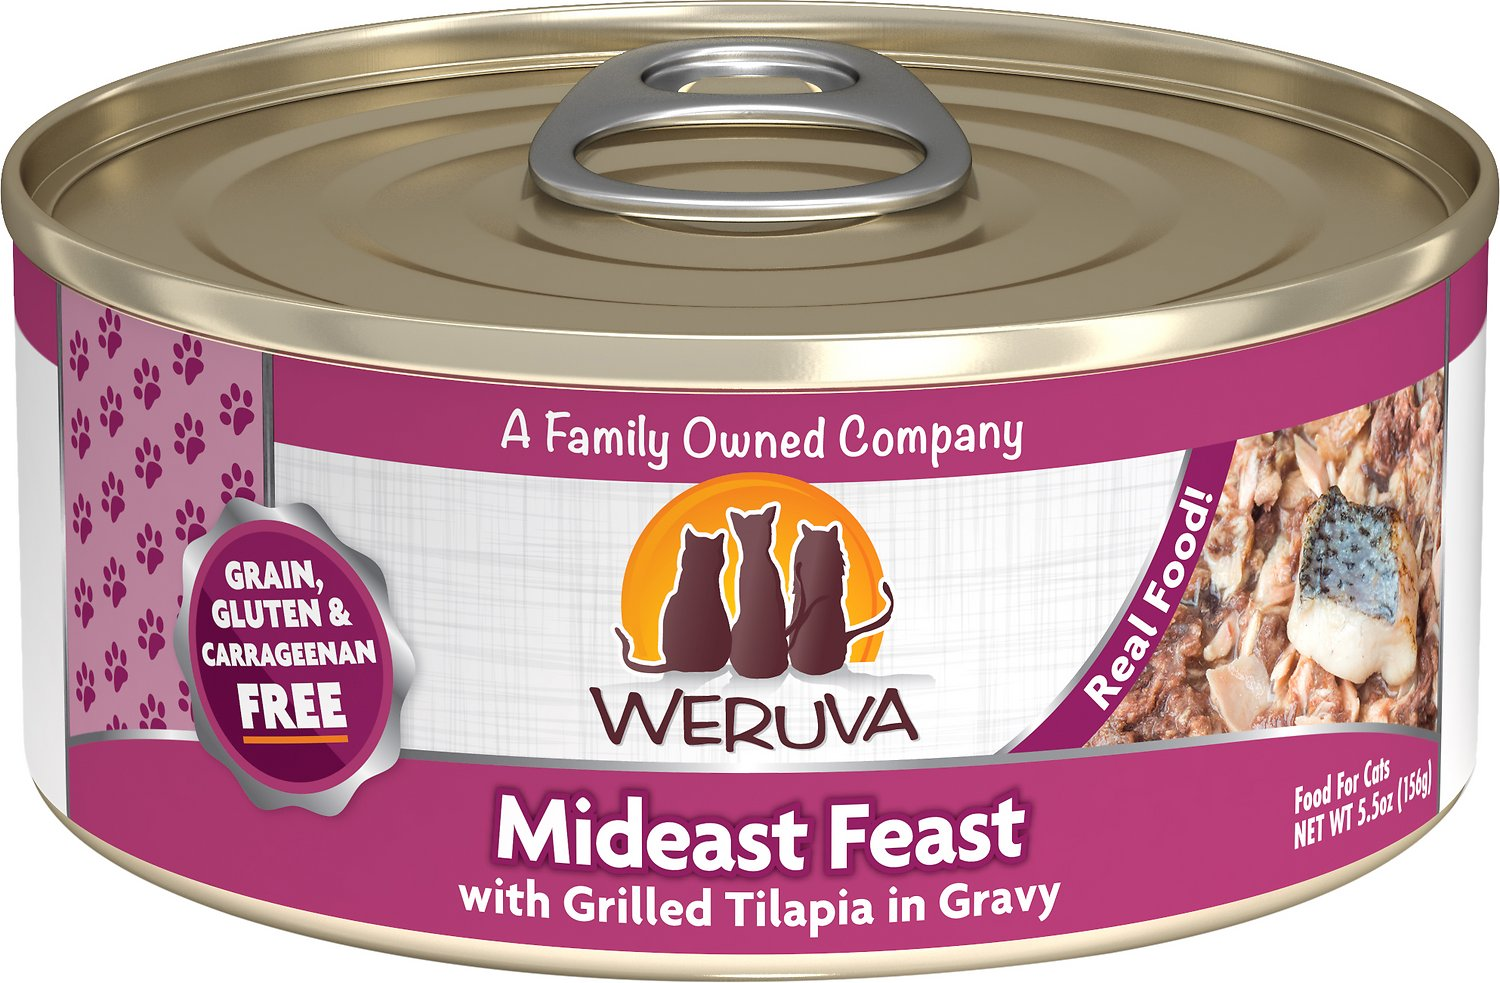 Weruva Cat Classic Mideast Feast with Grilled Tilapia in Gravy Grain-Free Wet Cat Food, 5.5-oz